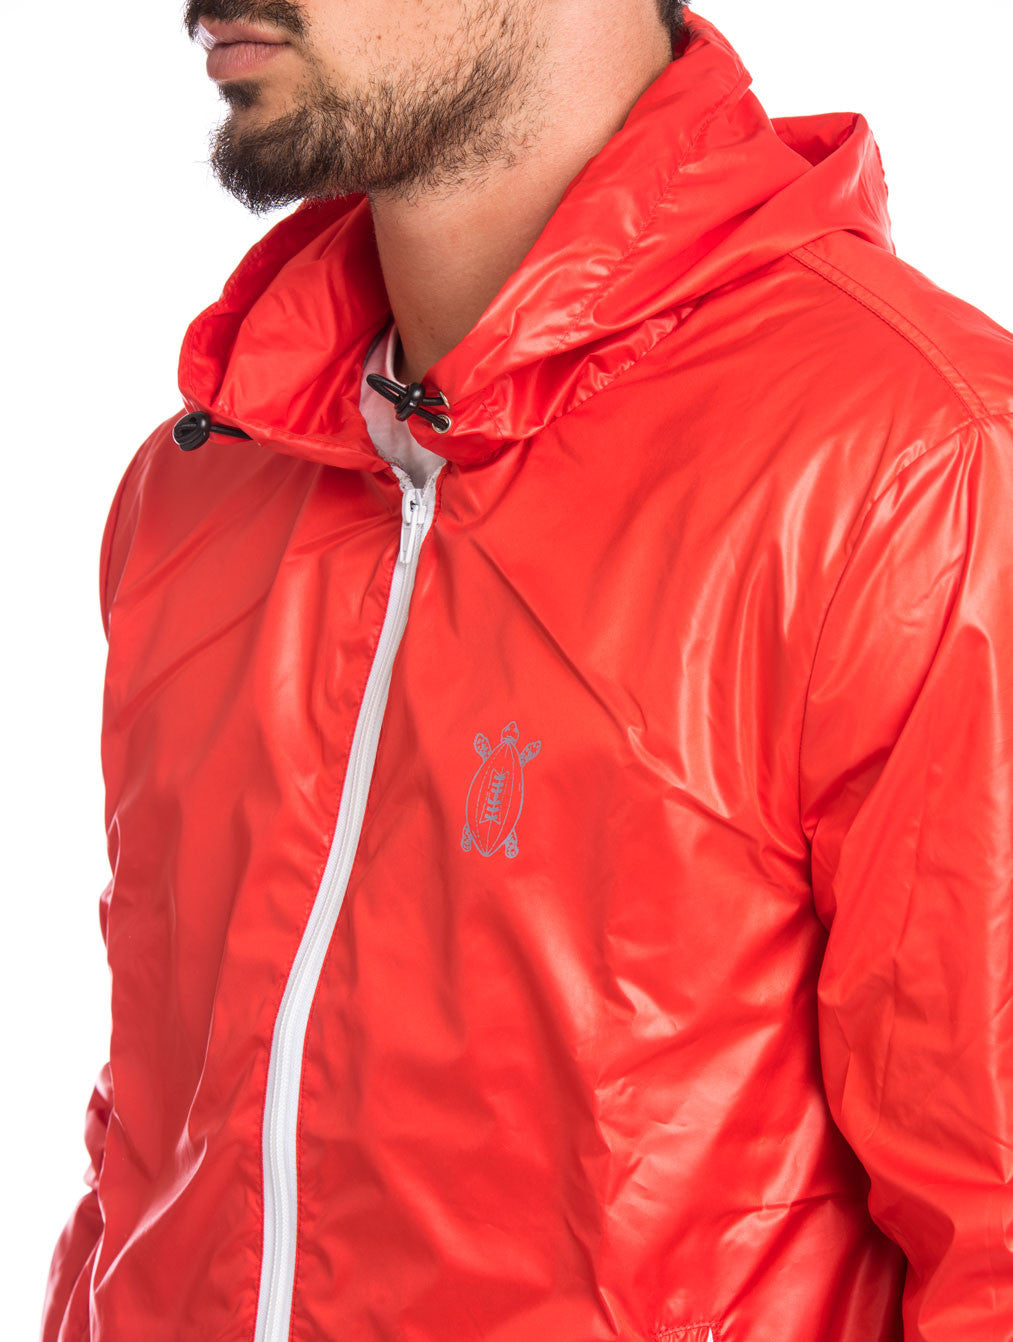 MEN'S CLOTHING | LOBSTER RUGBY PATCH JACKET | RED | WINDBREAKER JACKET| TECHNICAL FABRIC | HOOD |COTTON JERSEY CUFFS | ELBOW PATCHES | GABARDINE PATCH | PRINTED NUMBER | ZIP POCKETS | MADE IN ITALY | SOLASIE' | NOHOW